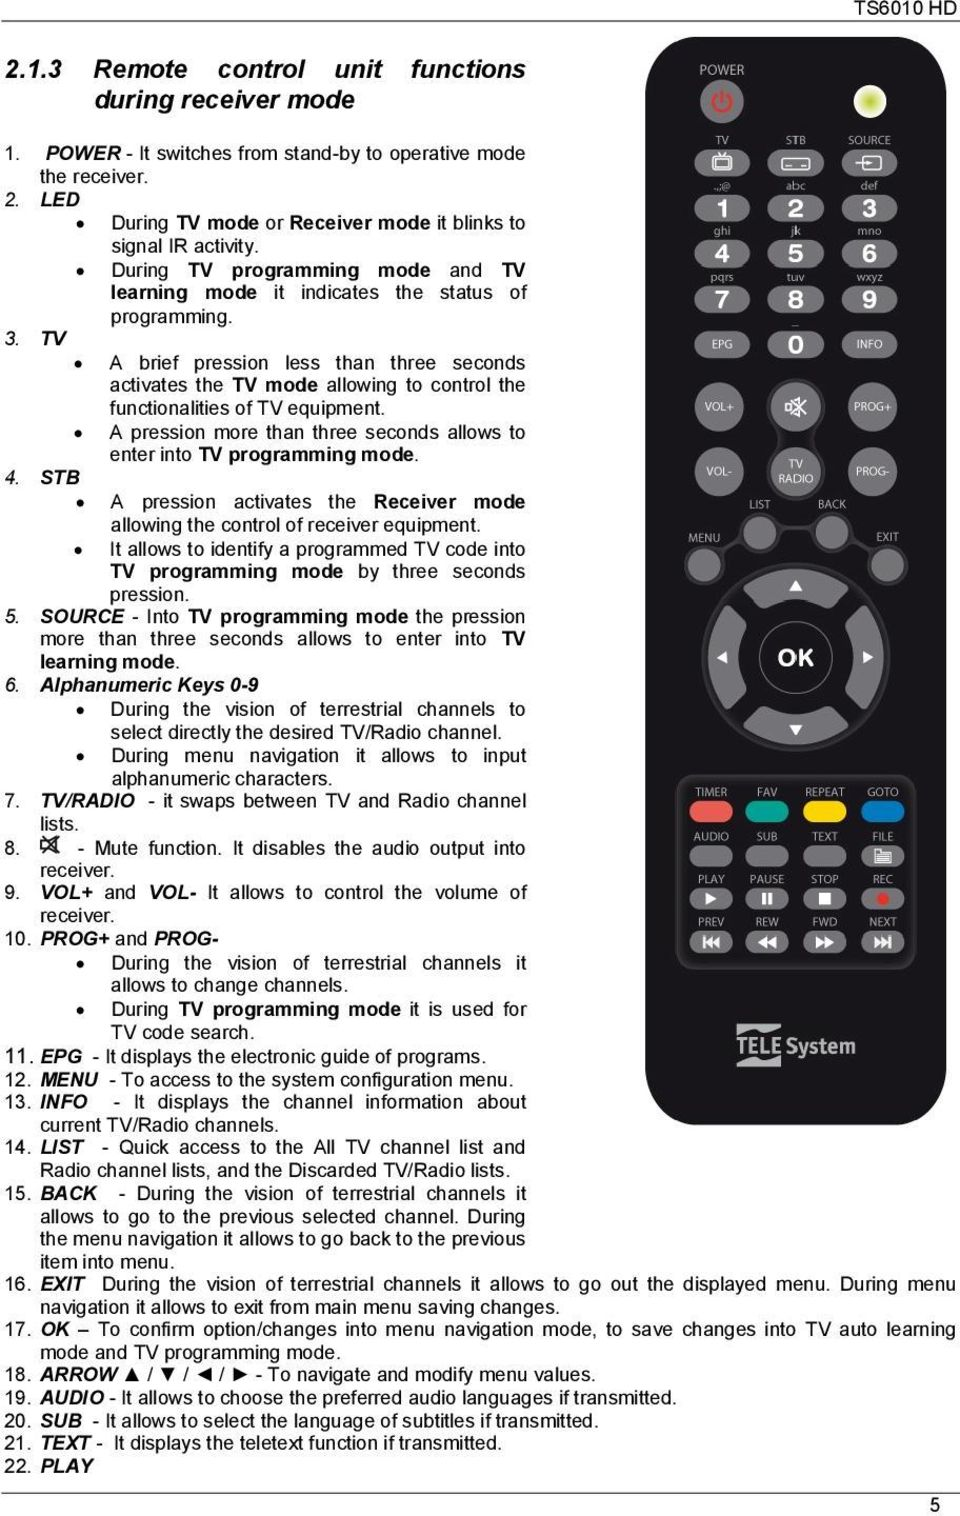 TV A brief pression less than three seconds activates the TV mode allowing to control the functionalities of TV equipment. A pression more than three seconds allows to enter into TV programming mode.